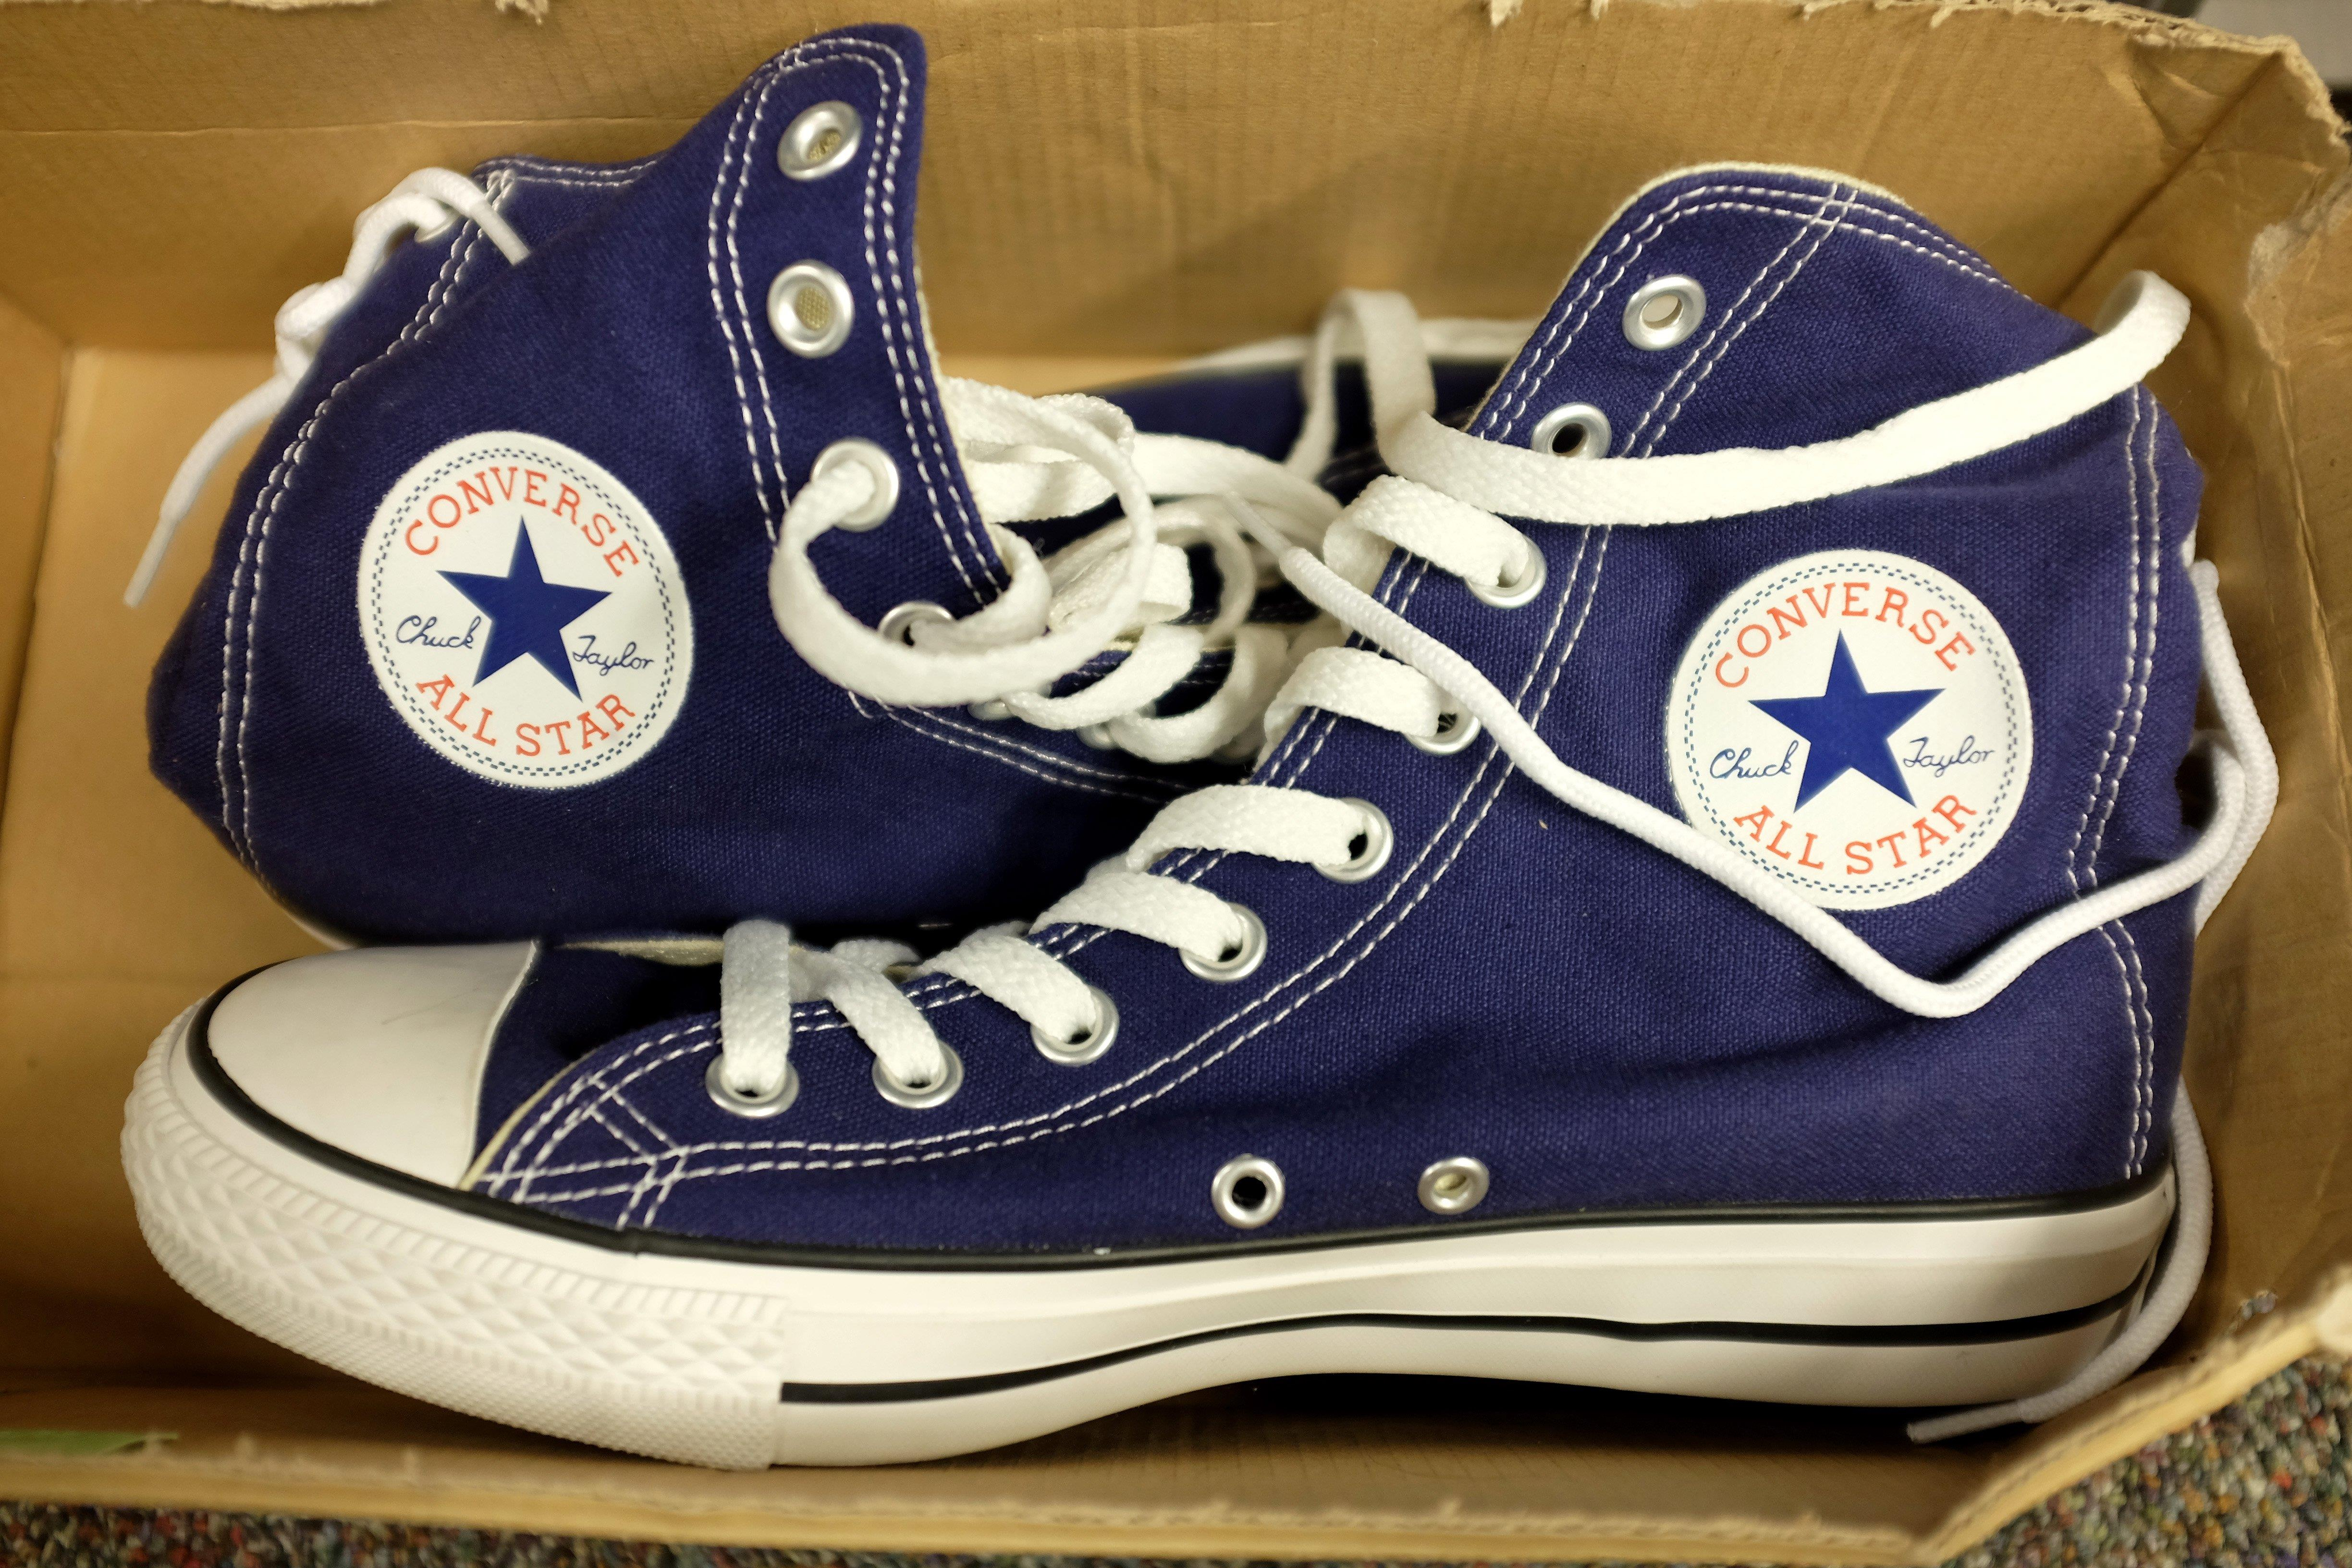 71157a750347 Converse Sues 31 Companies Over Alleged Chuck Taylor Knockoff Sneakers